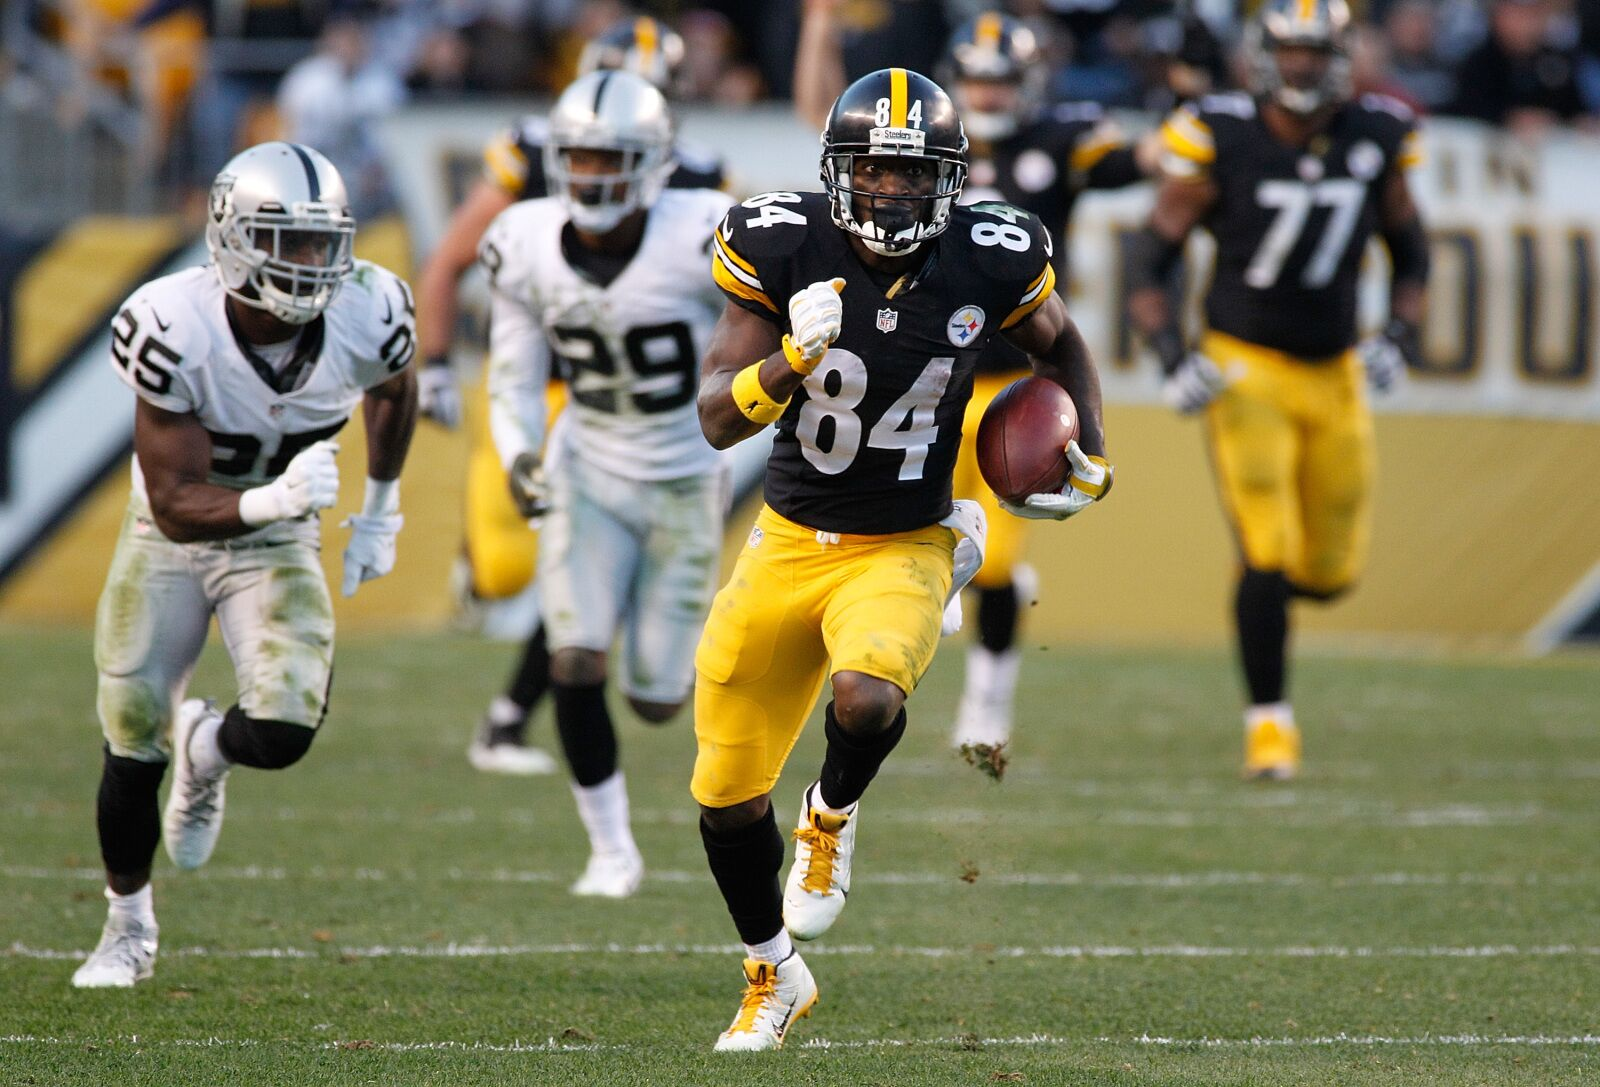 Are Antonio Brown and Tyrell Williams the best WR duo in the AFC West?